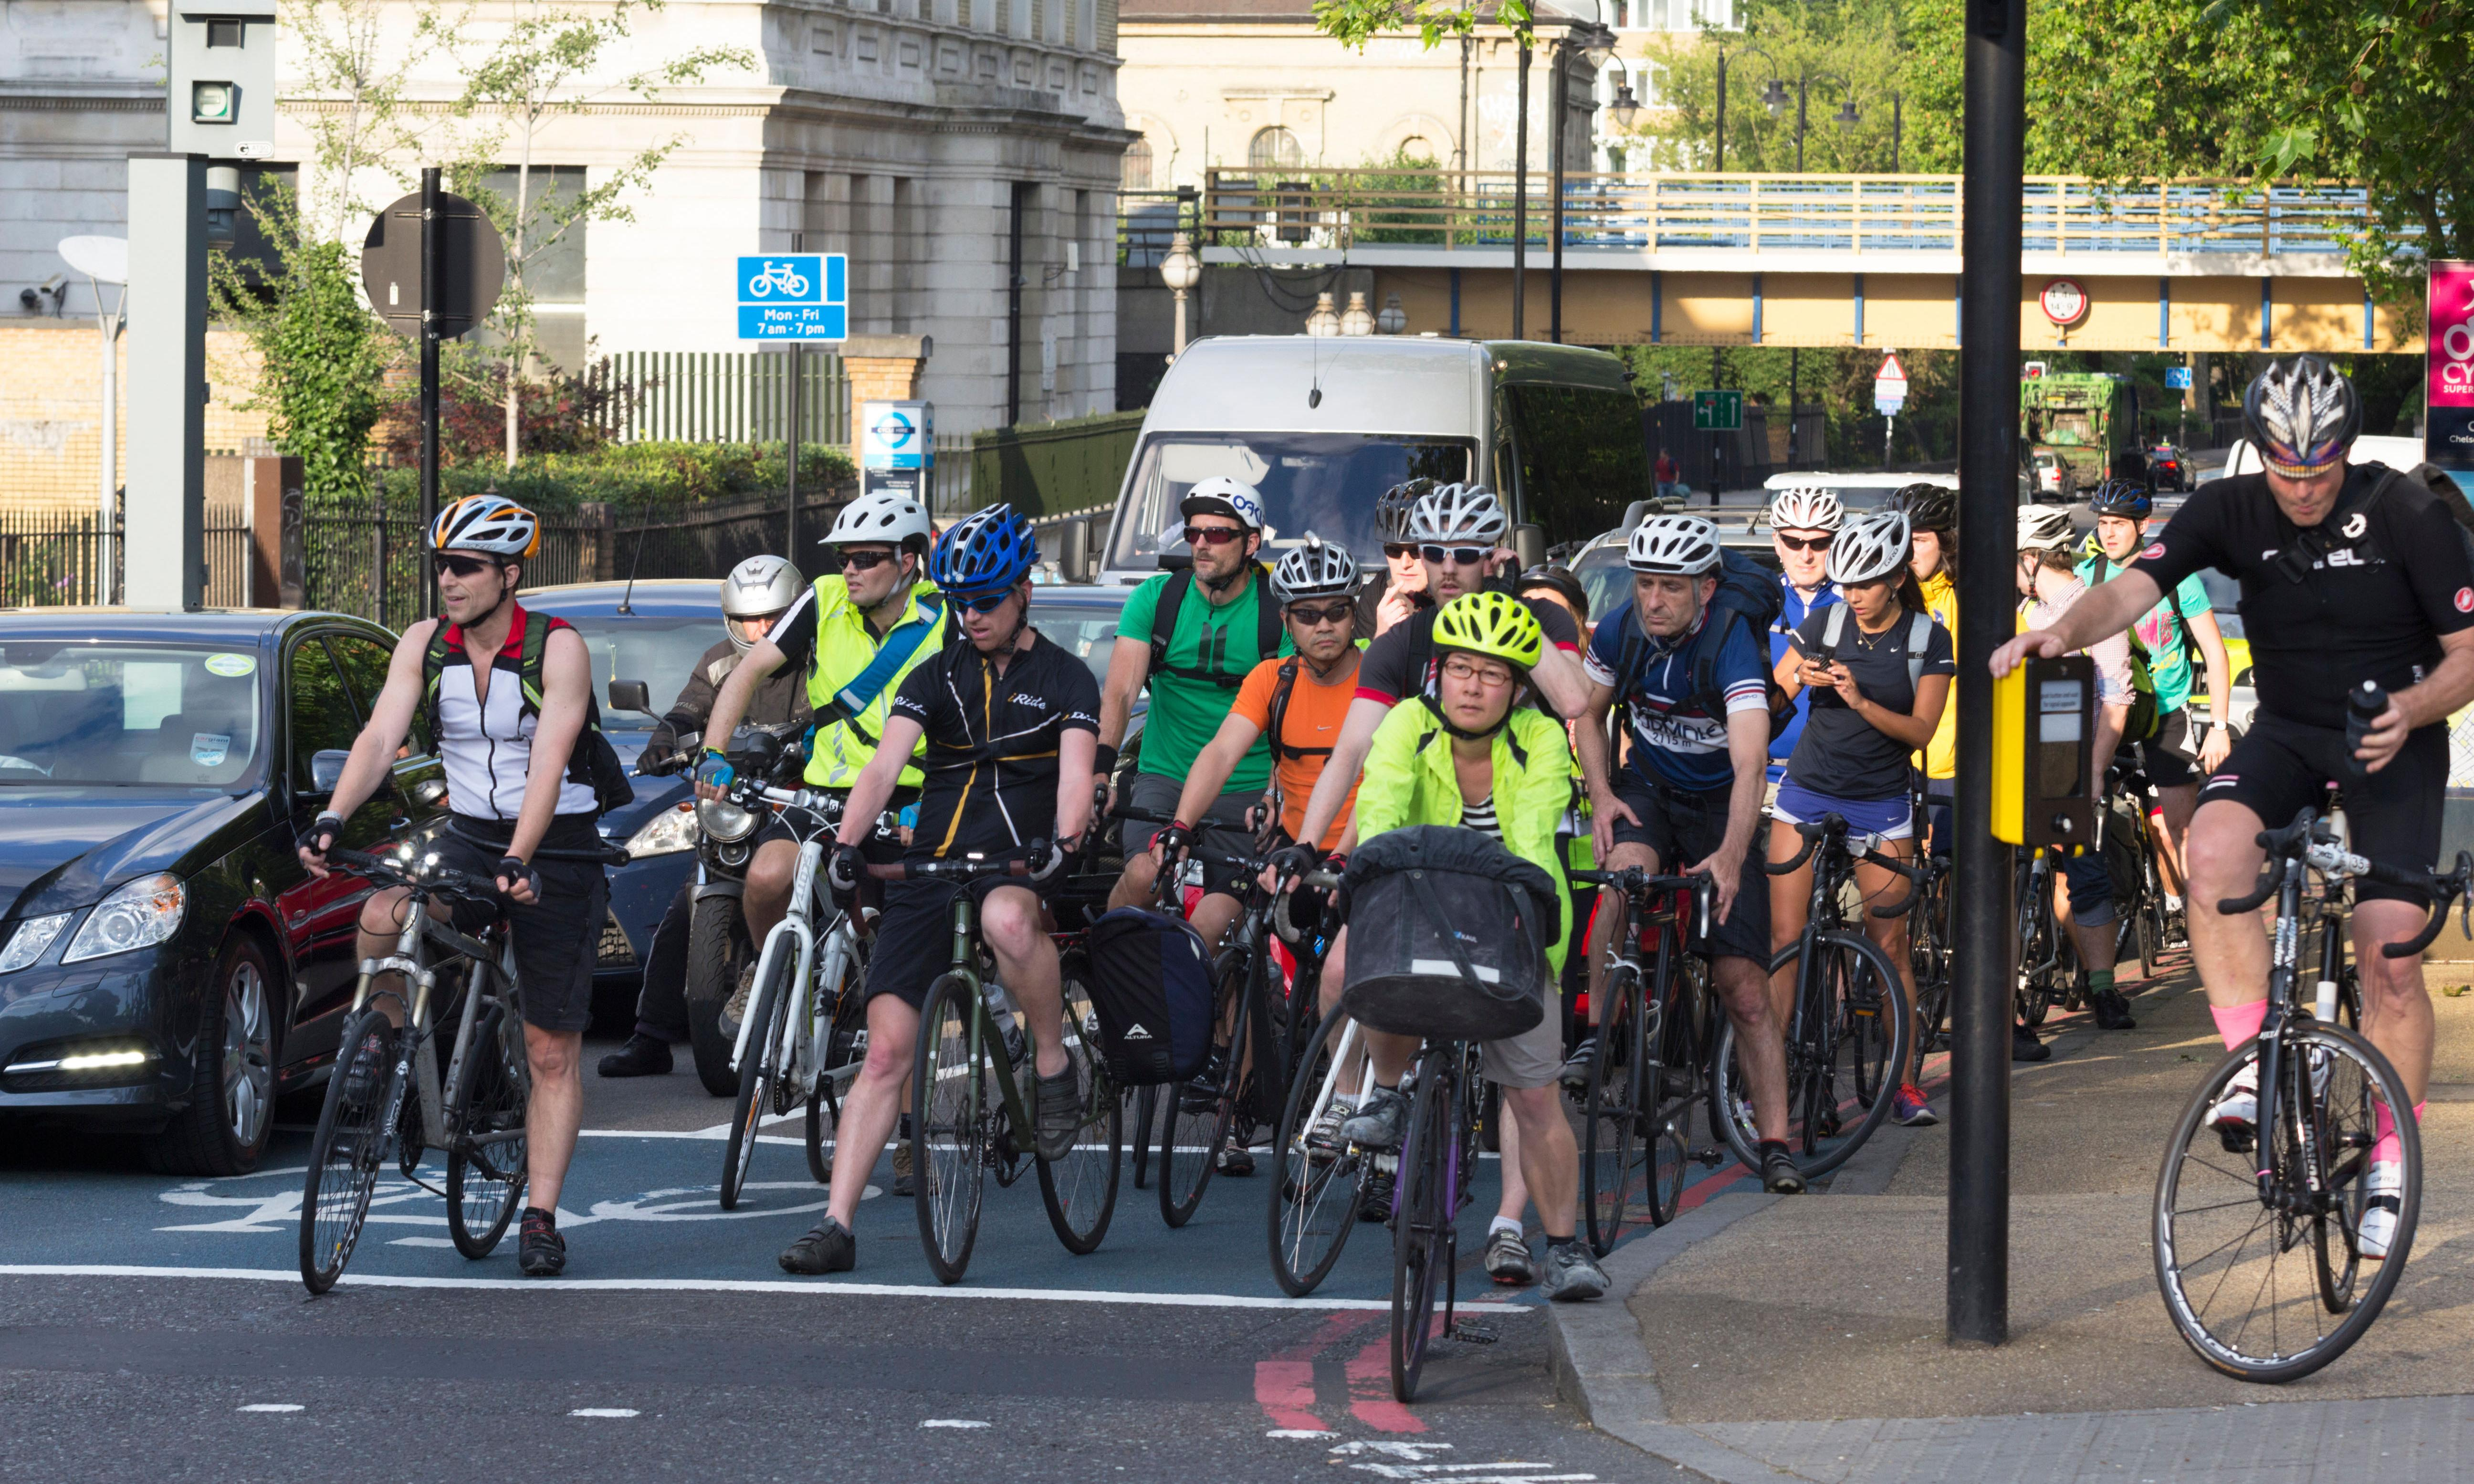 Kensington and Chelsea vetoes flagship road safety scheme